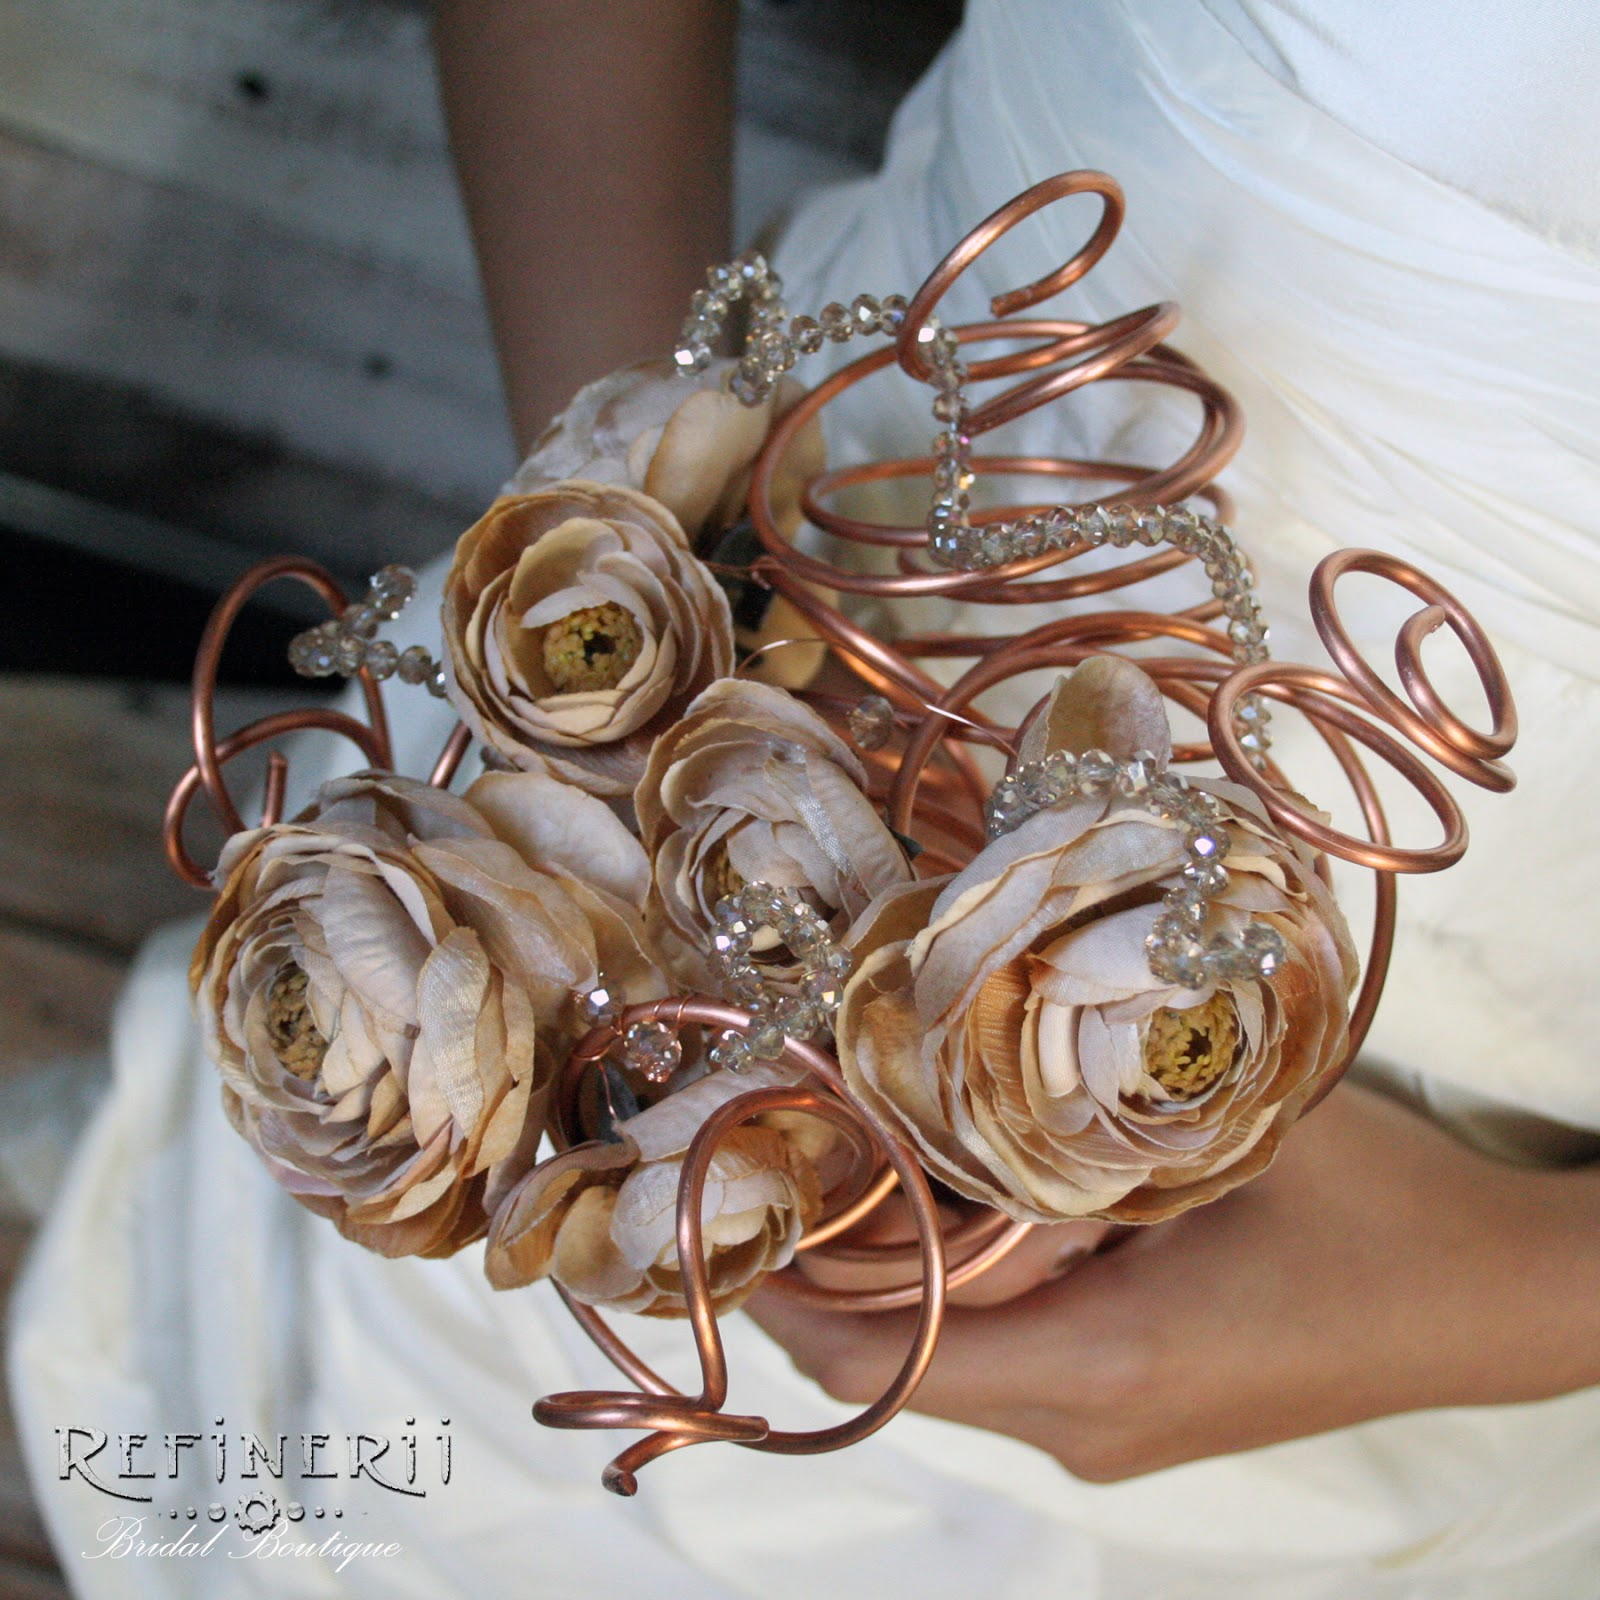 Refinerii Studios: New Alternative Metal Wedding Bouquet Designs